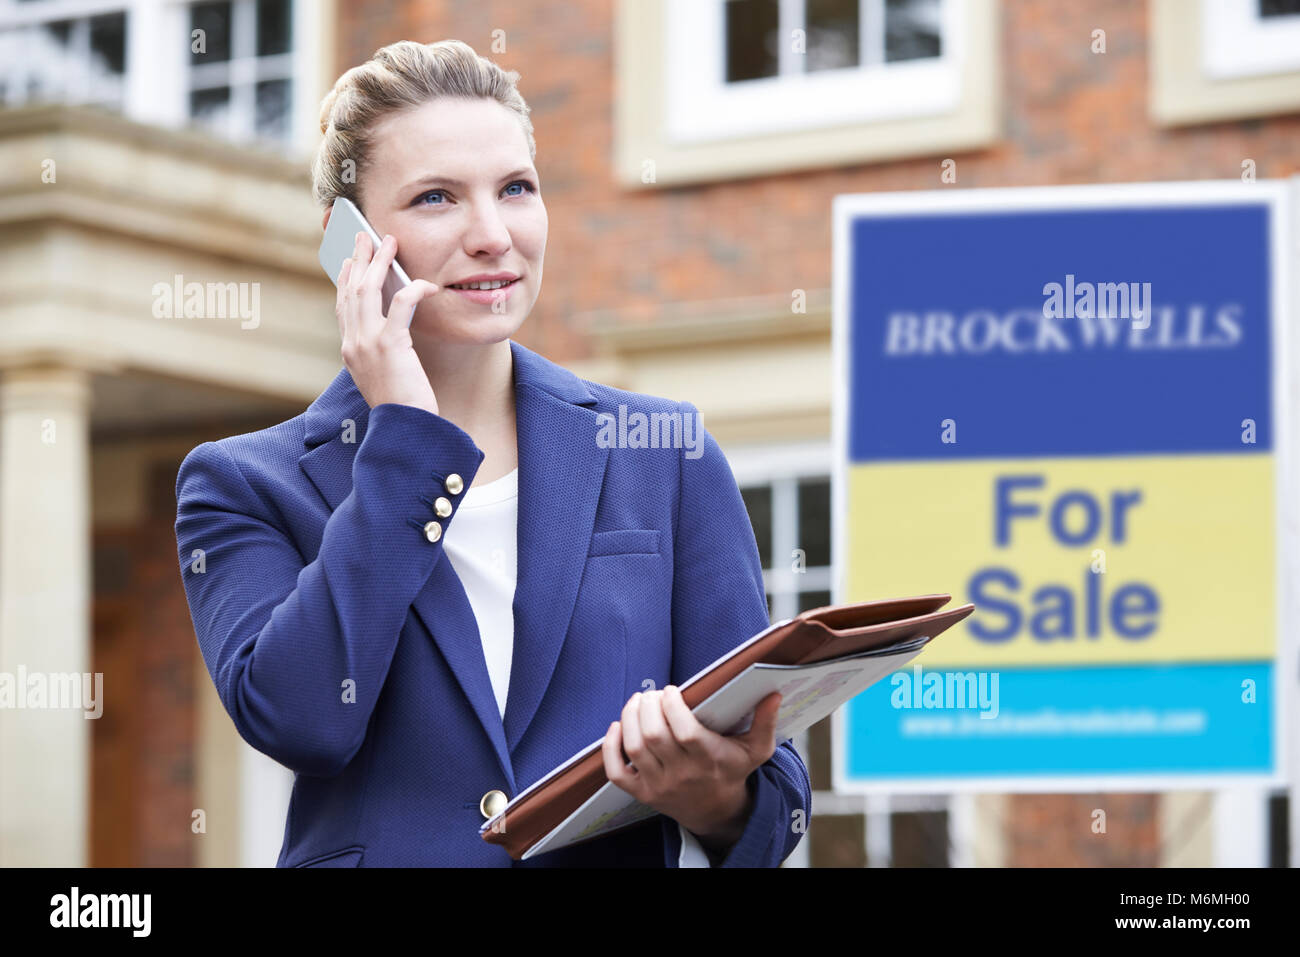 Female Realtor On Phone Outside Residential Property For Sale - Stock Image